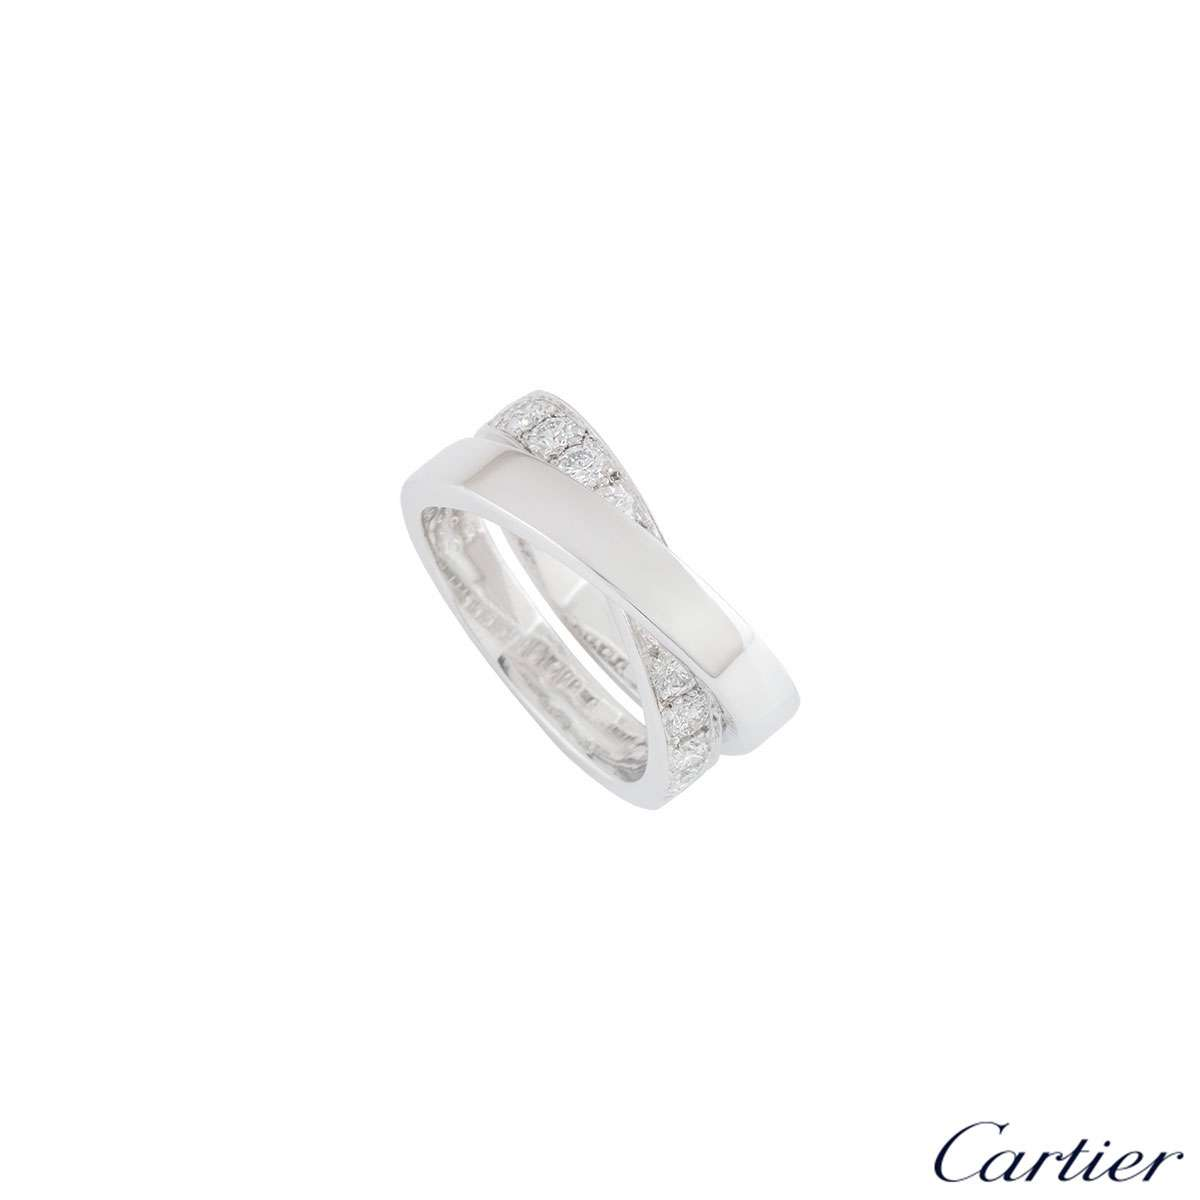 Cartier White Gold Paris Nouvelle Vague Diamond Ring Size 56